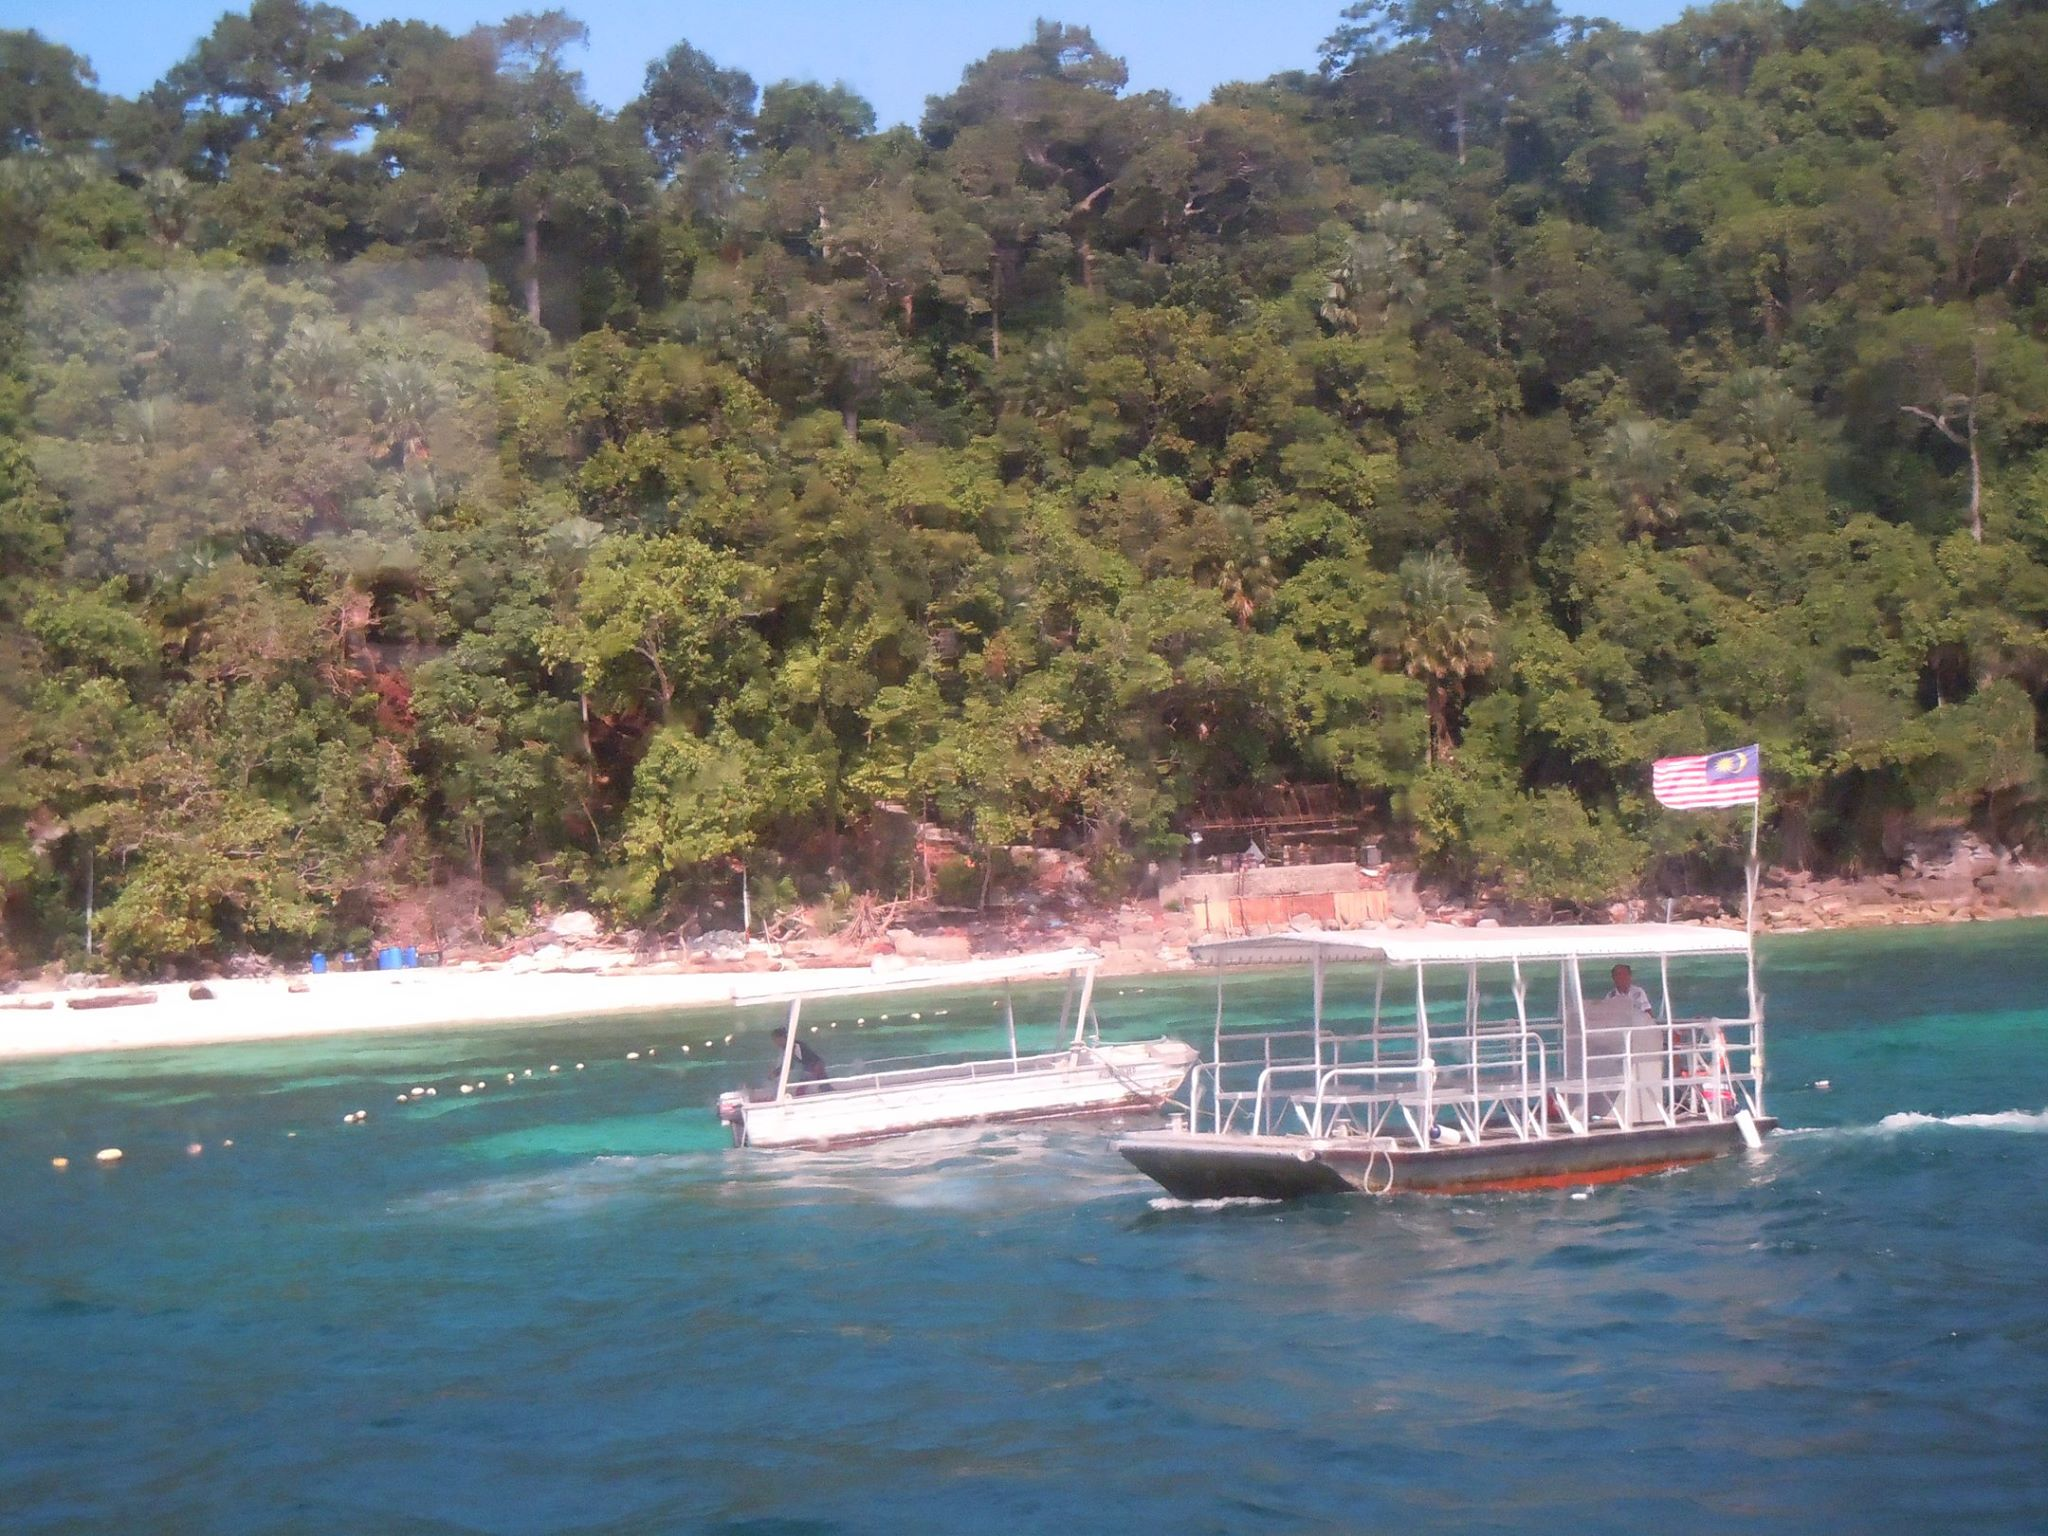 The wonderful island of Pulau Payar